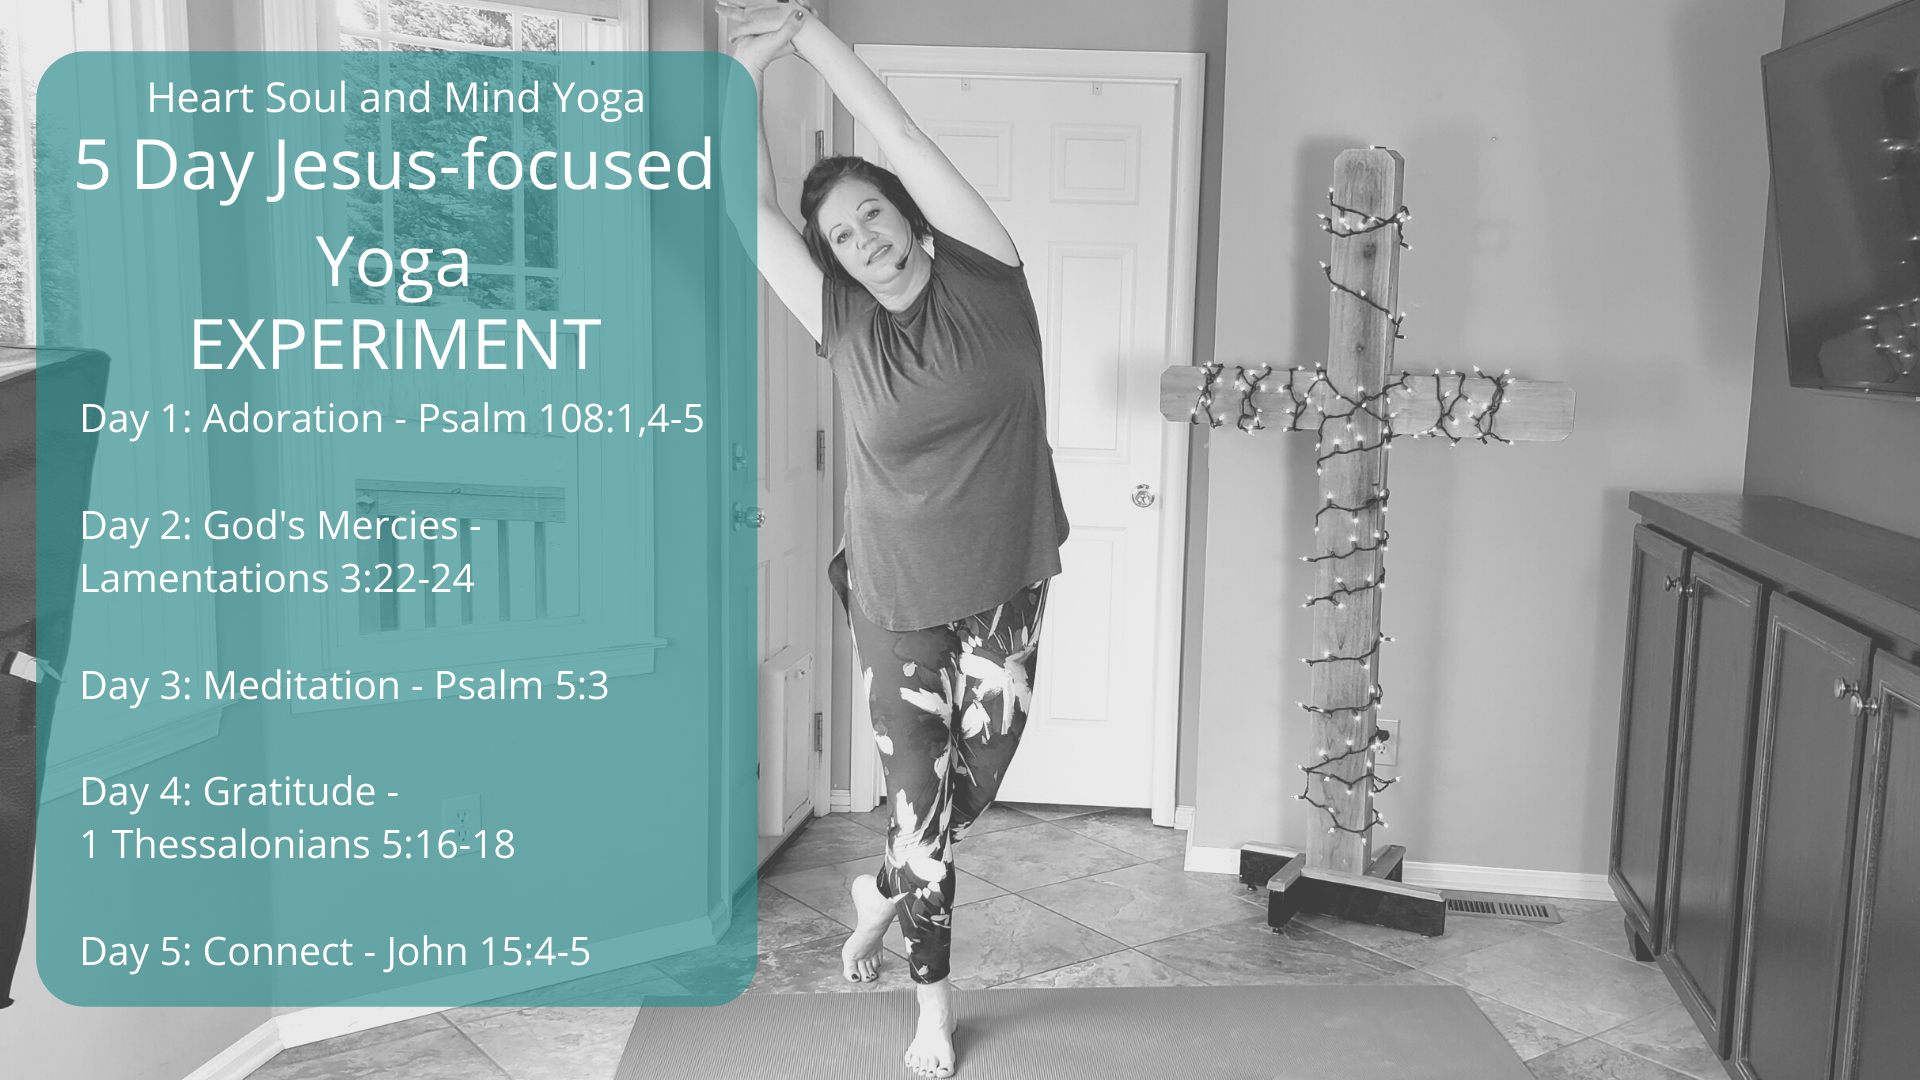 Topics of focus for 5 days of Christian Yoga Experiment